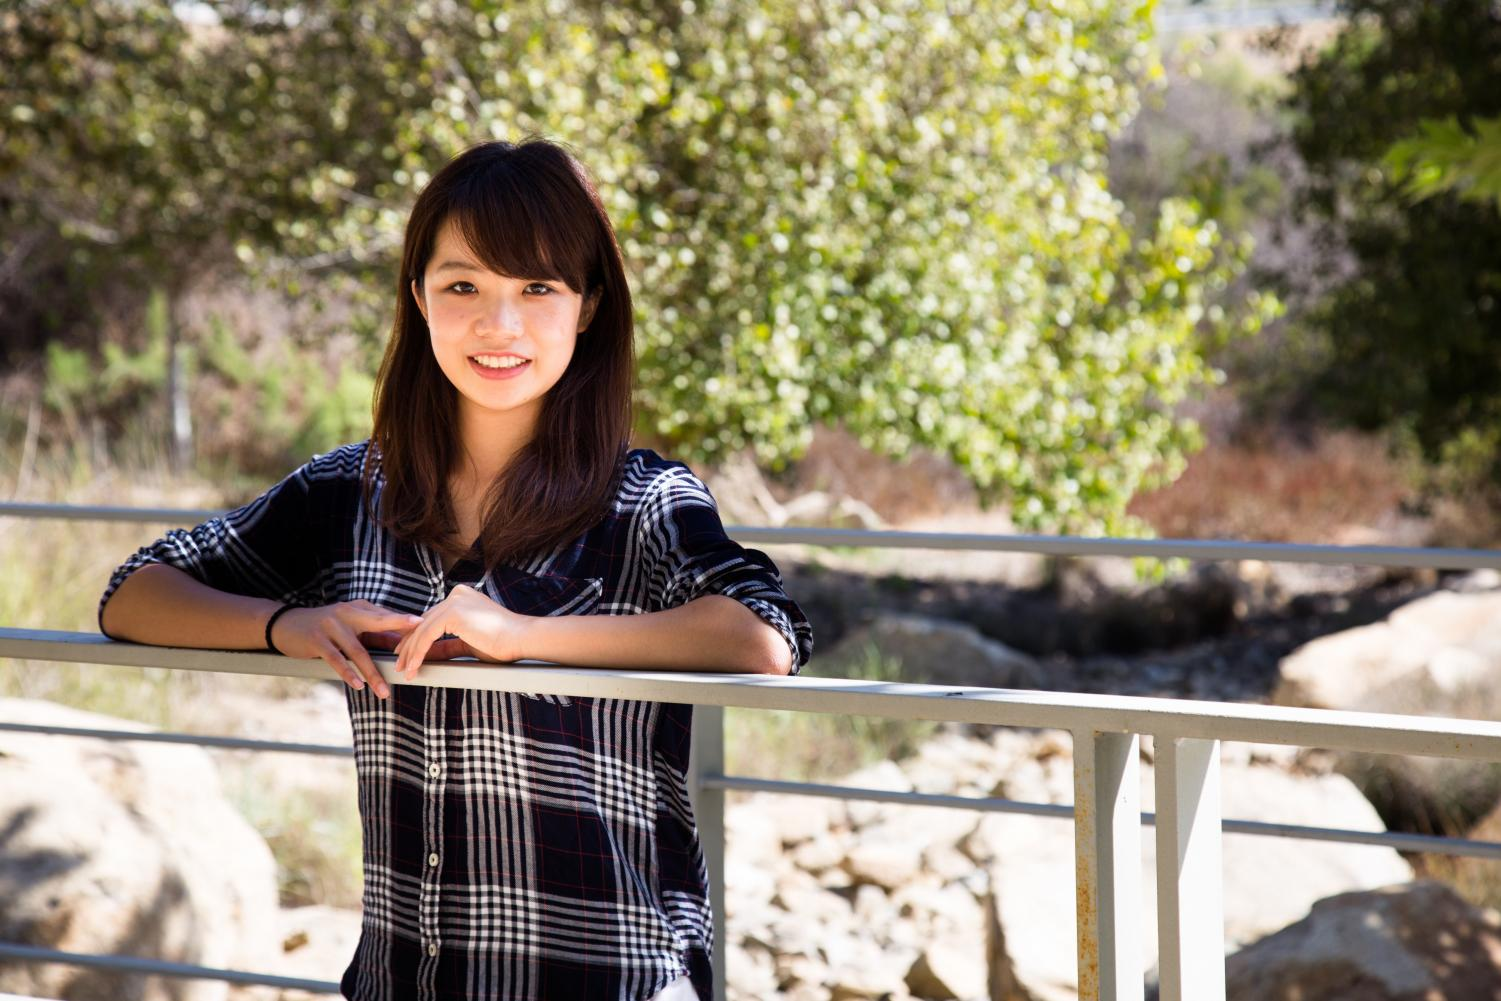 Maki Amano poses for photograph on a sunny day at CSUSM.